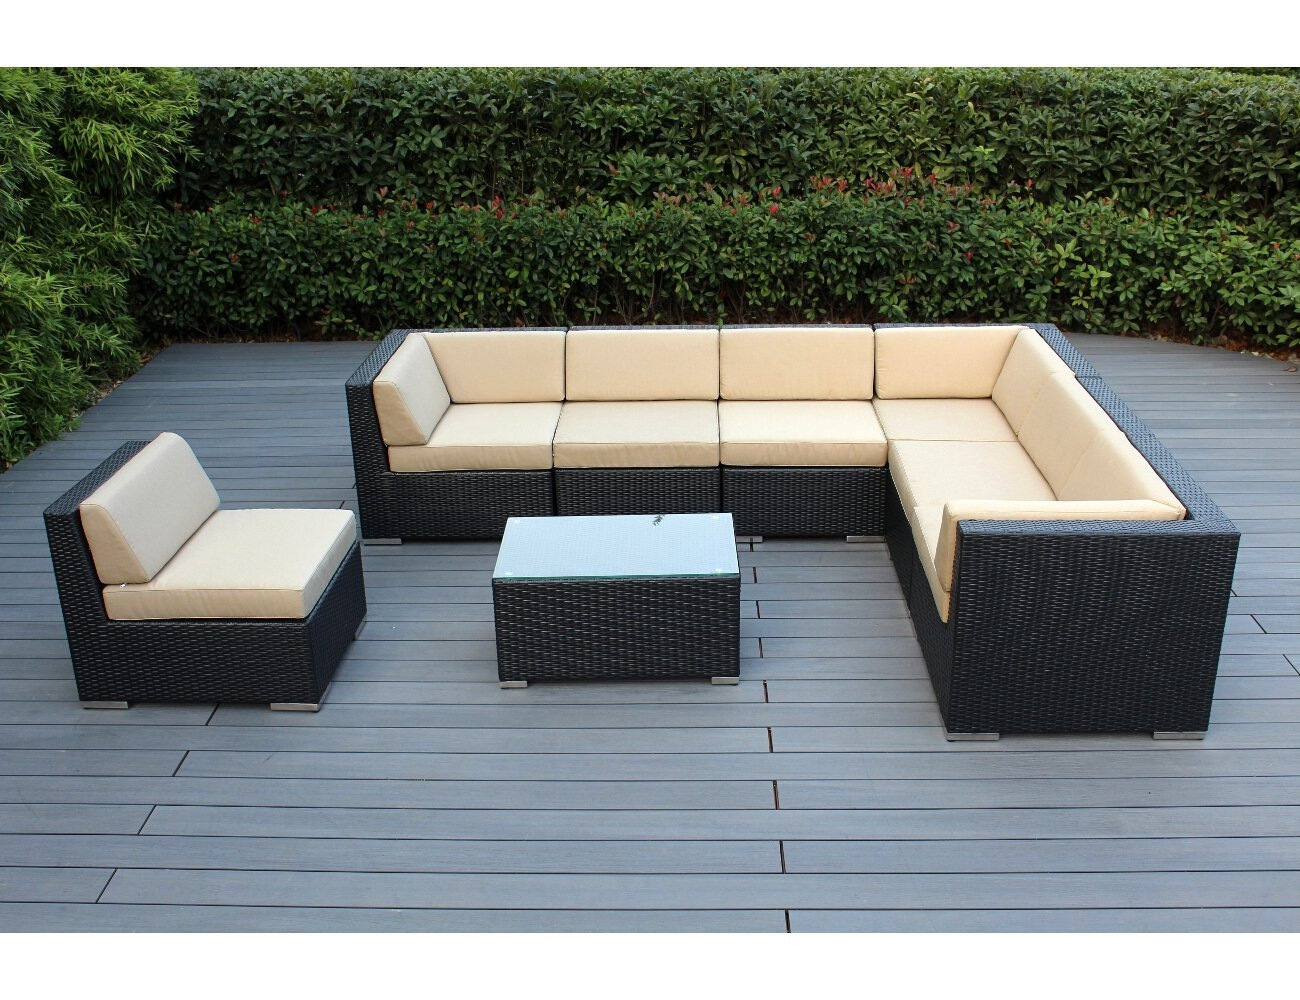 Amazon.com: Ohana 8-Piece Outdoor Patio Furniture Sectional Conversation  Set, Black Wicker with Sunbrella Antique Beige Cushions - No Assembly with  Free ...